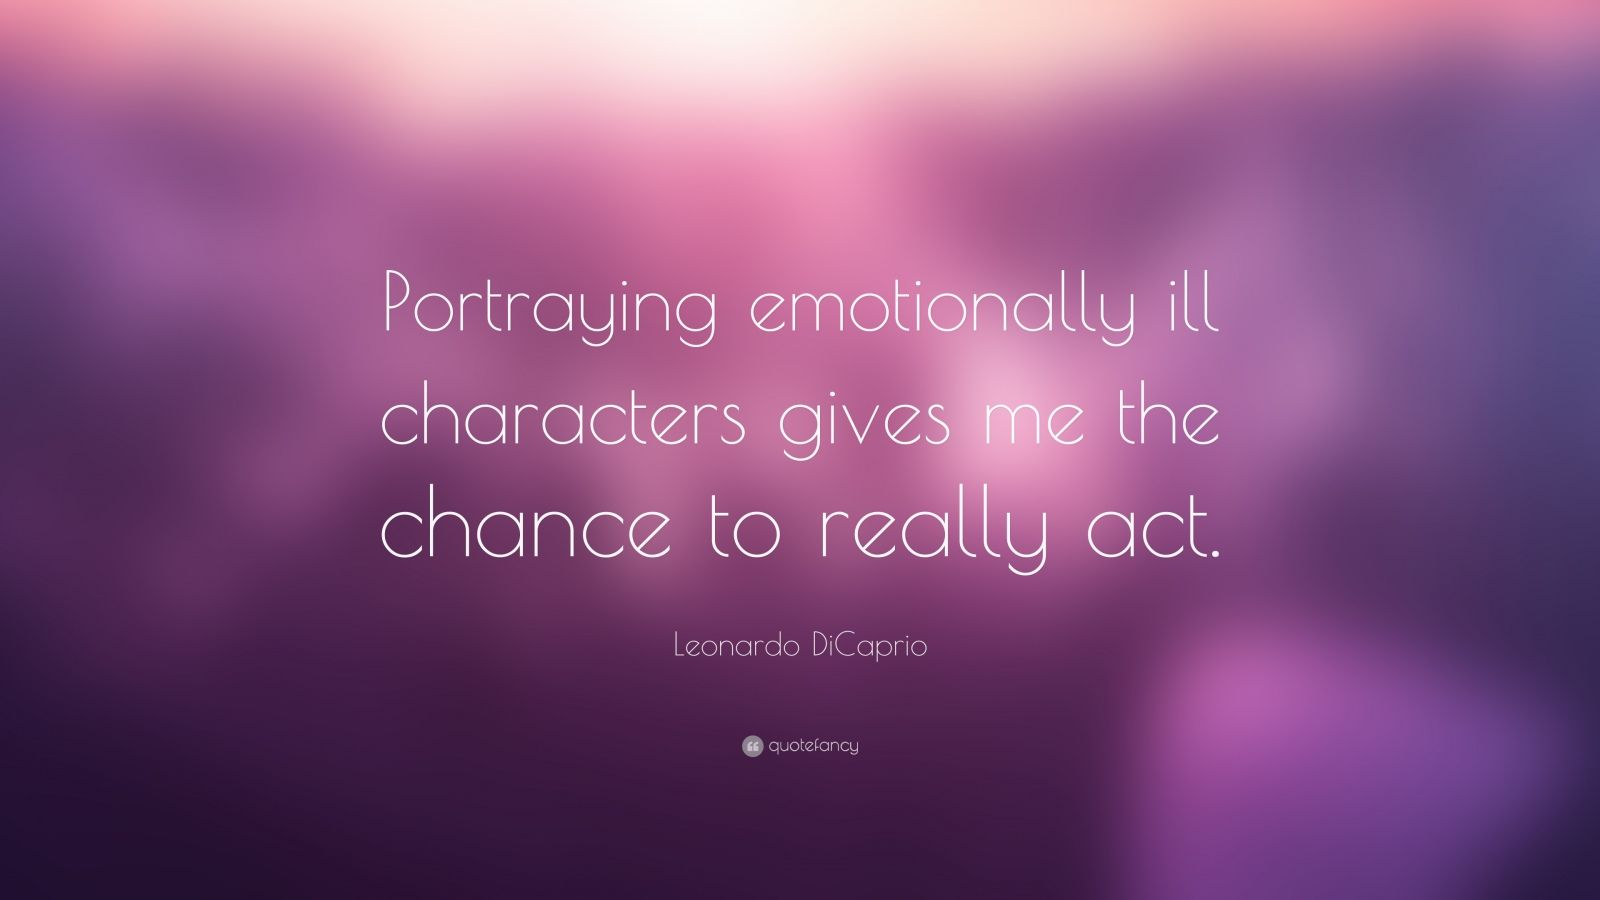 """Leonardo DiCaprio Quote: """"Portraying emotionally ill characters gives me the chance to really act."""""""